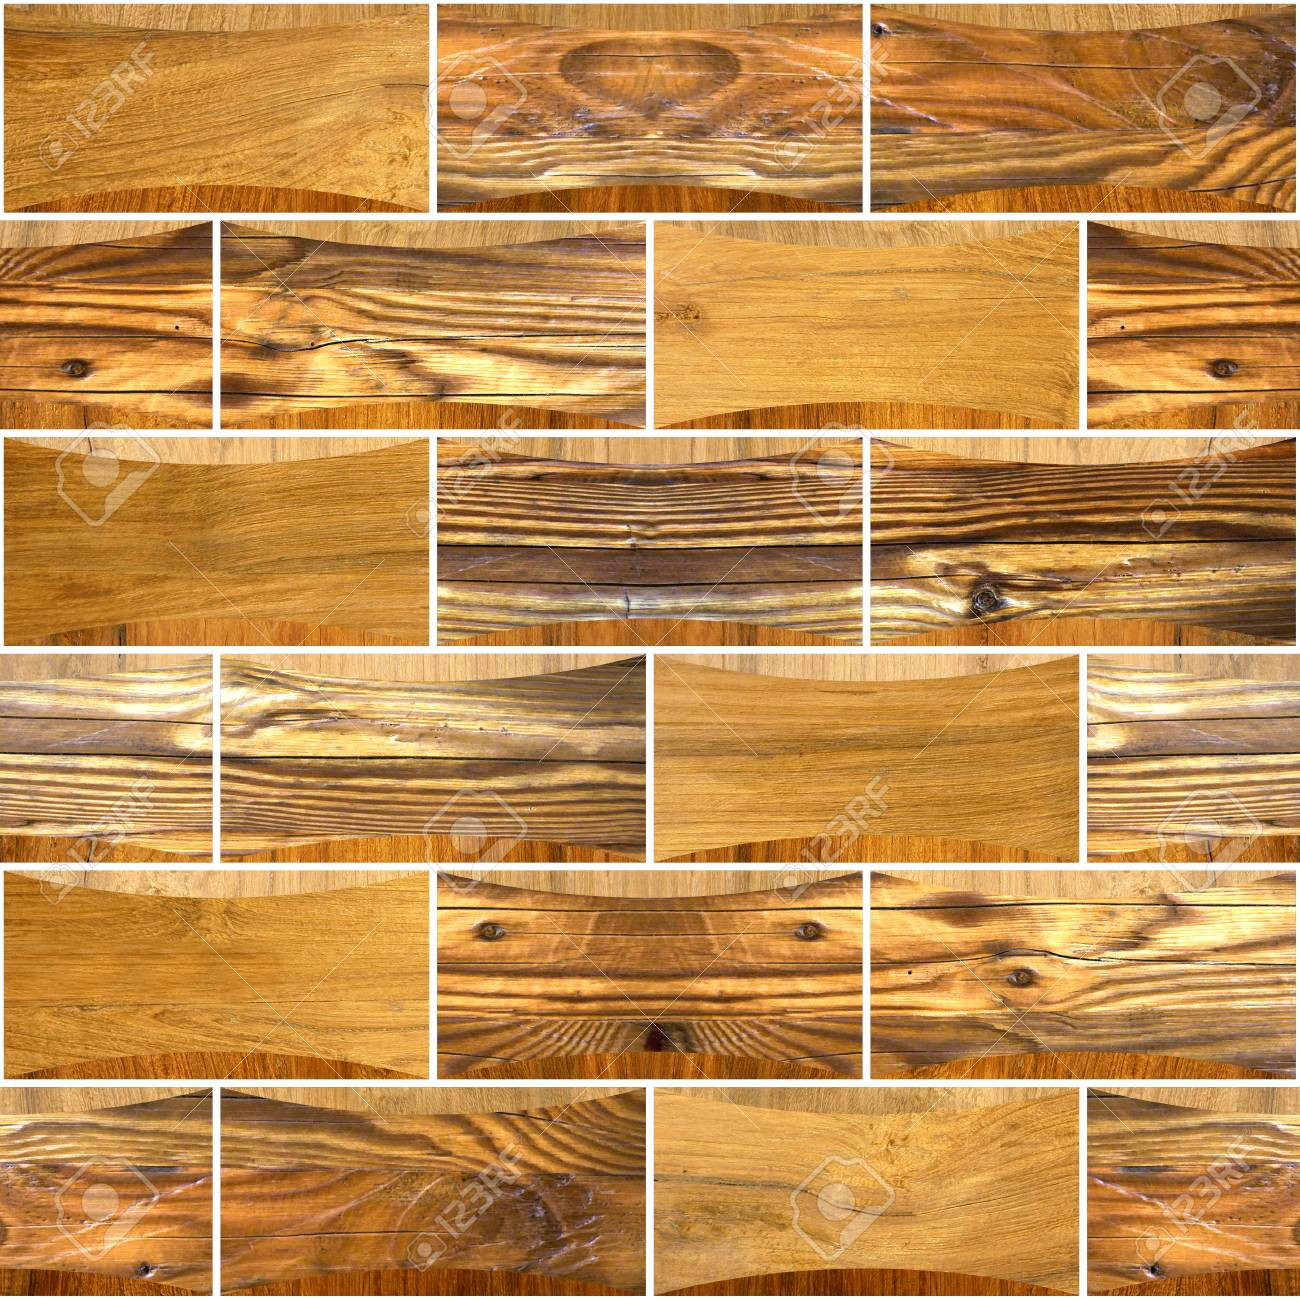 Wall Decor Wooden Decorative Wooden Bricks Interior Wall Decoration Abstract